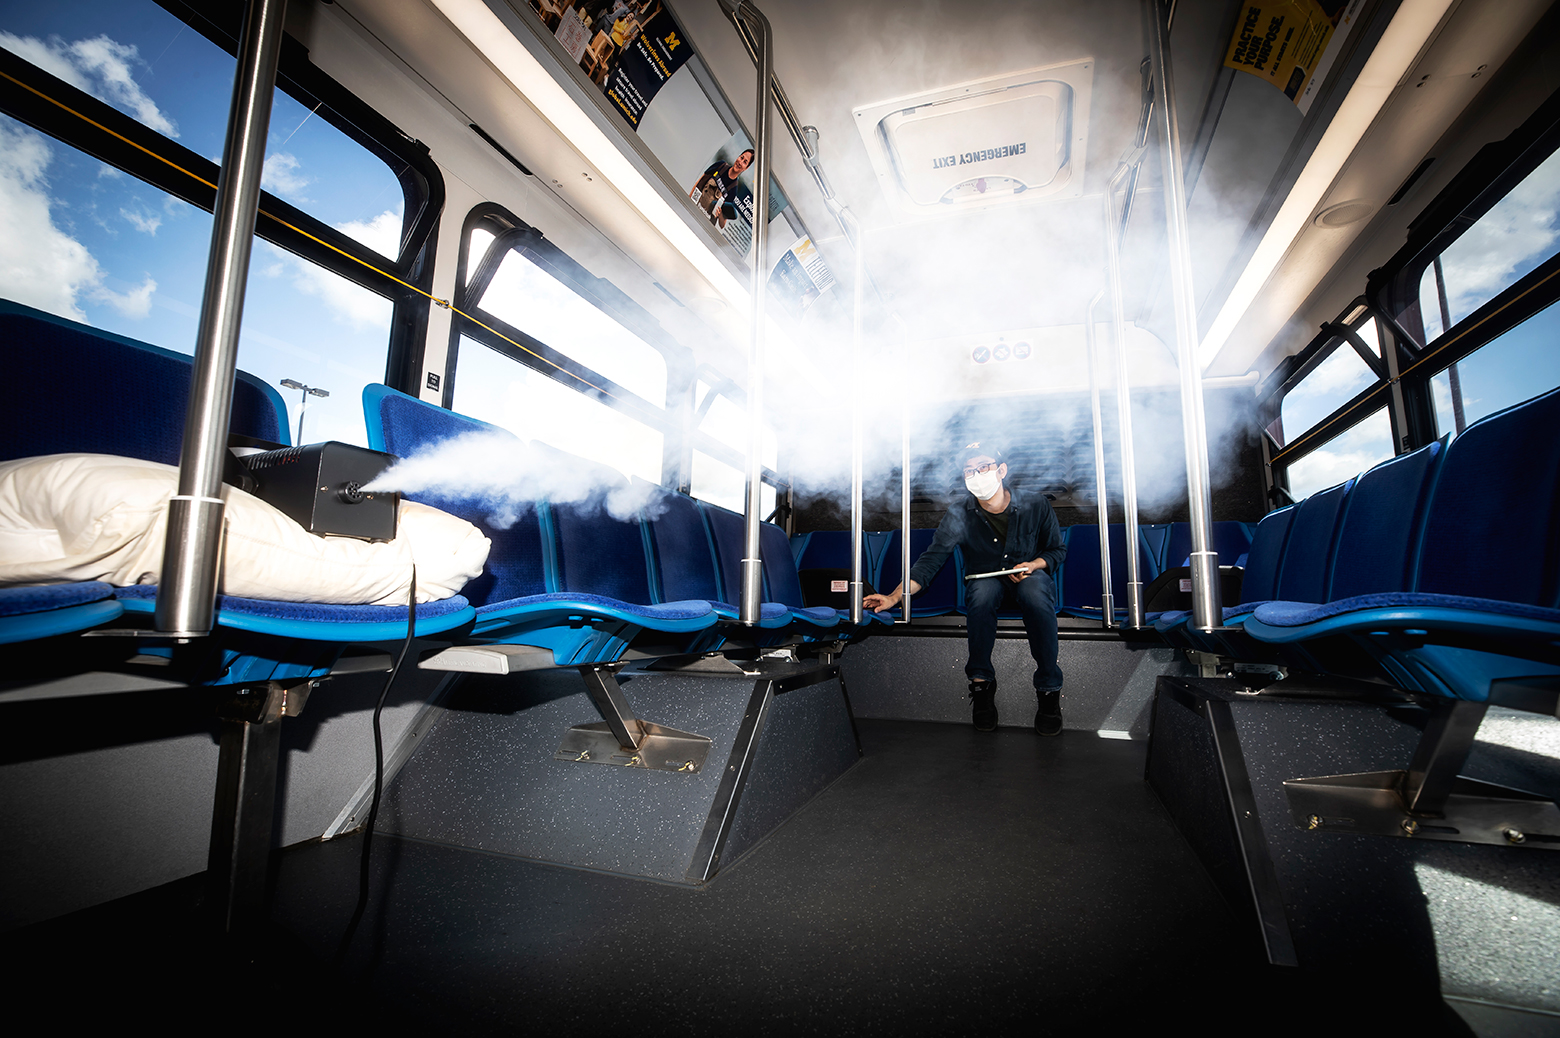 Kwang Hee Yoo, ME Researcher, measures the flow of aerosols in a University of Michigan blue bus in Ann Arbor, MI on June 24, 2020. Photo: Joseph Xu/Michigan Engineering, Communications & Marketing